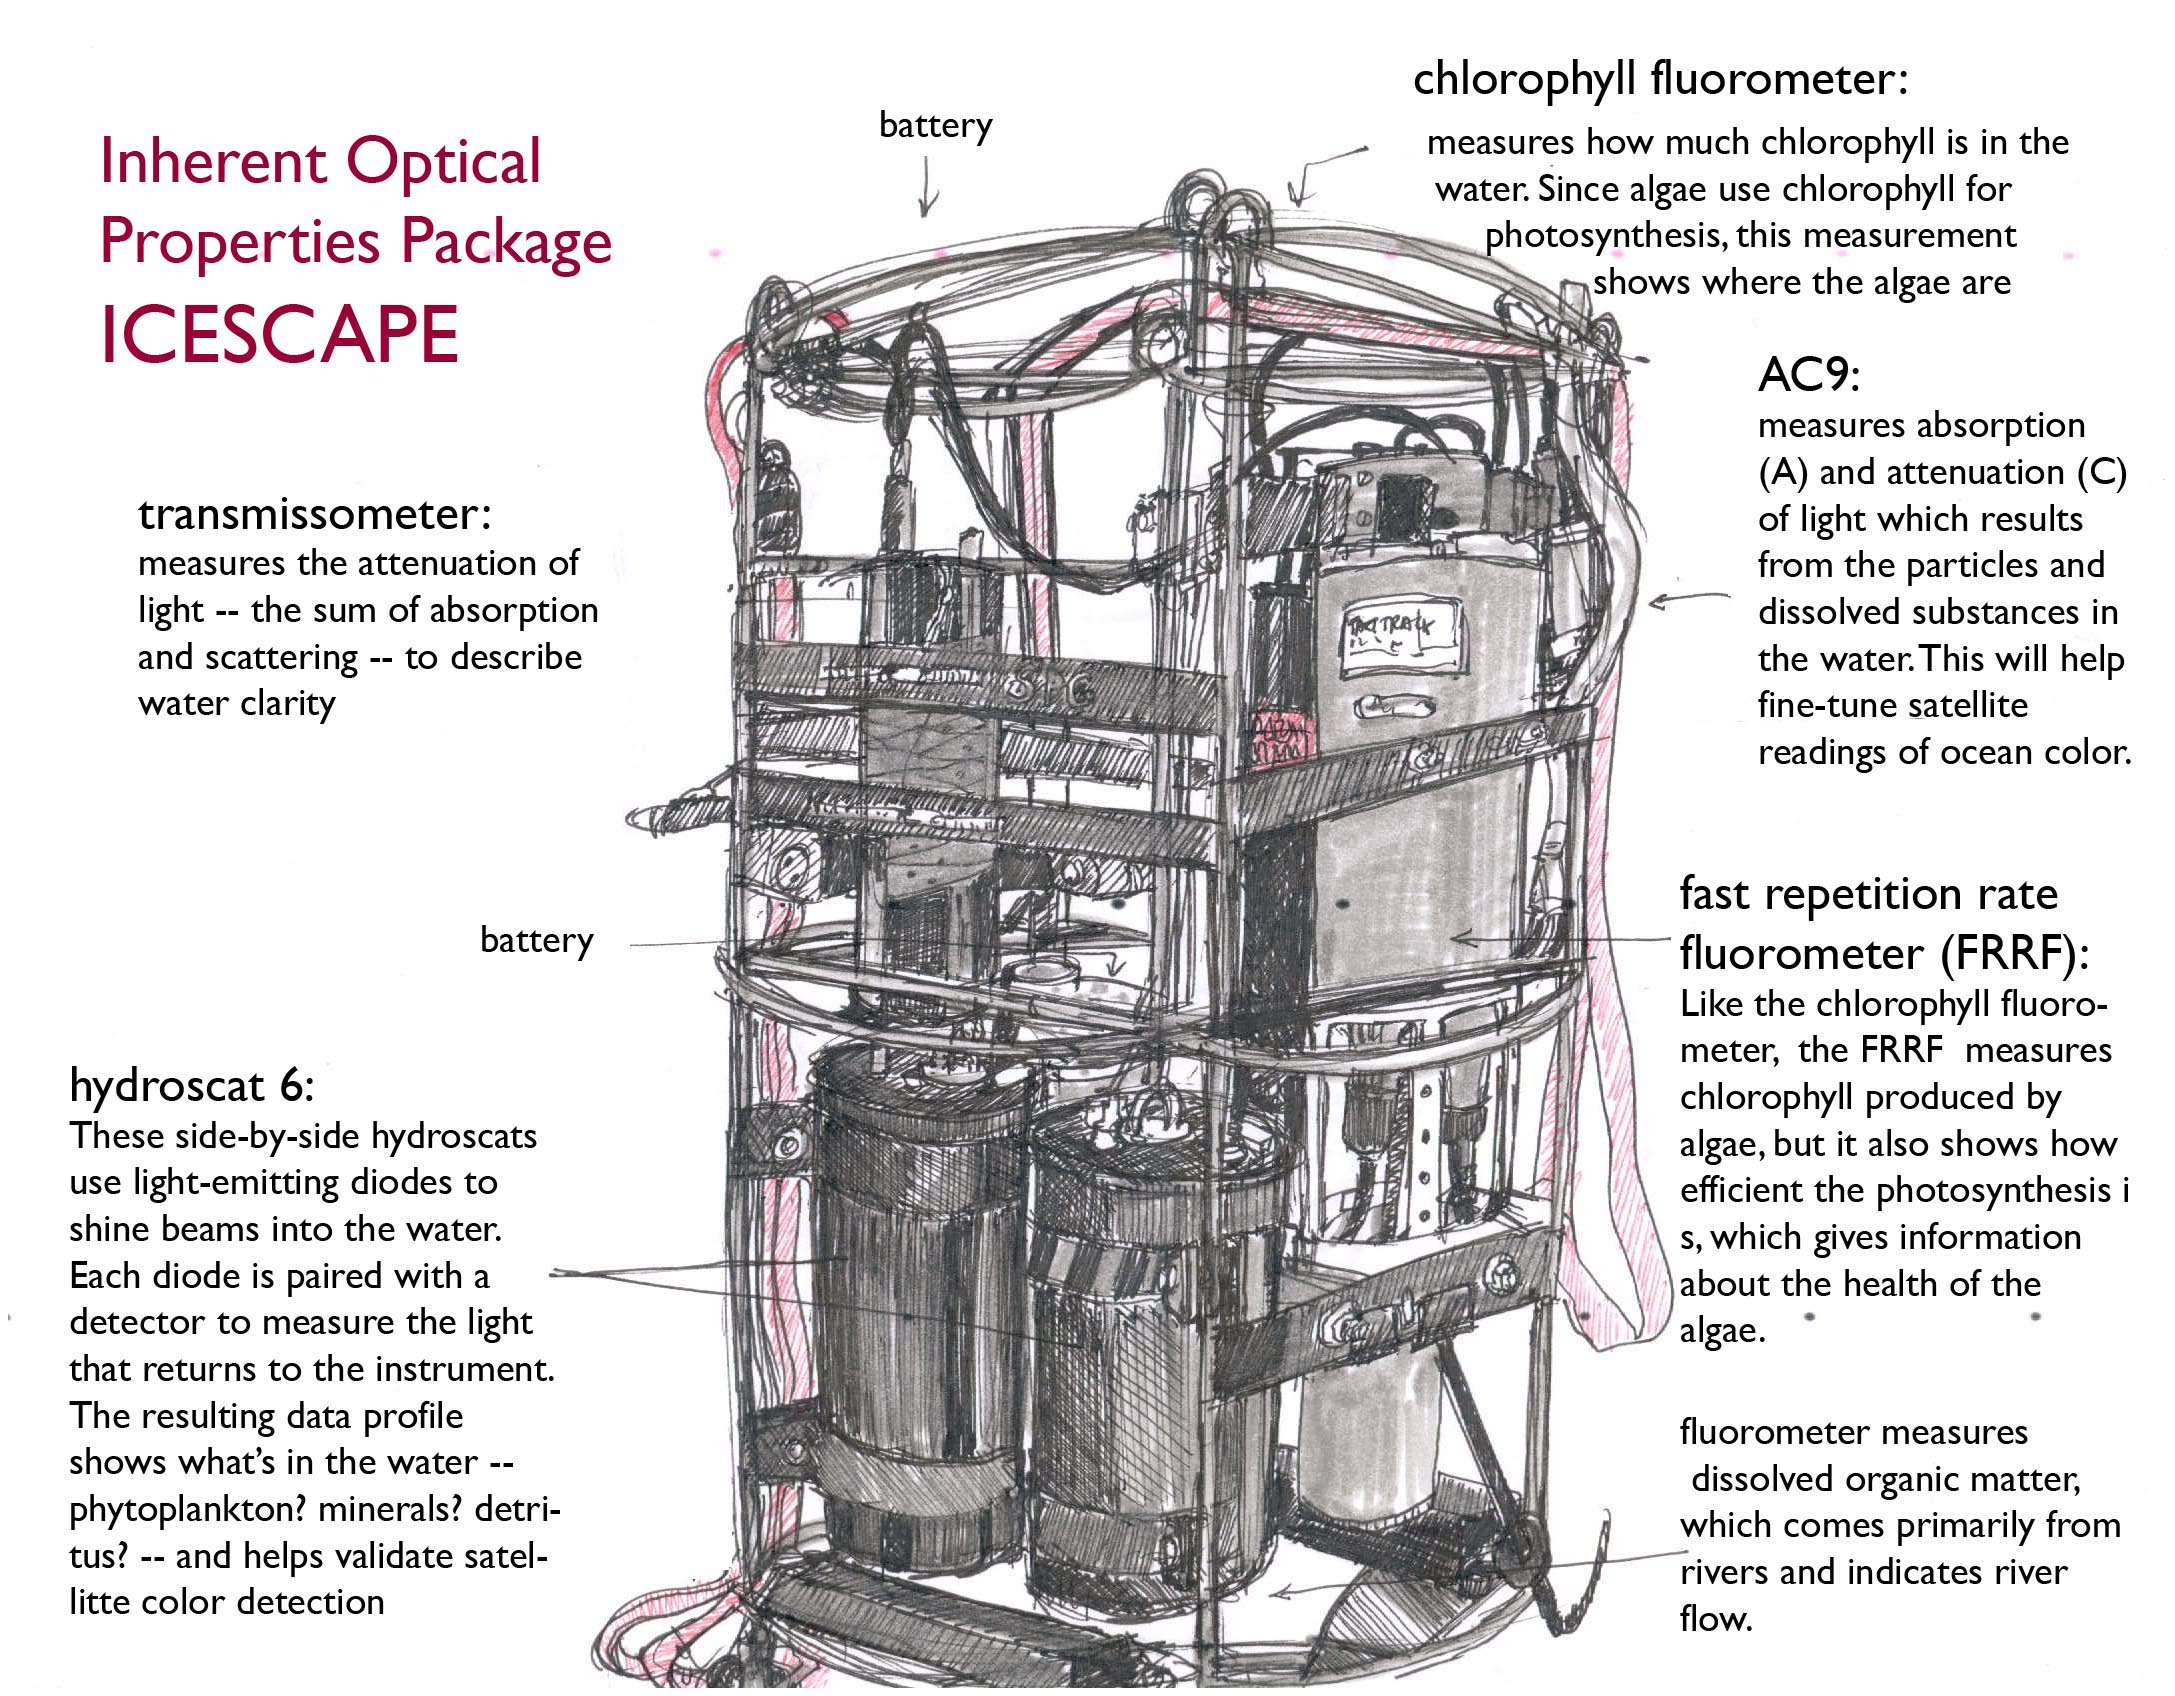 Mcarlowicz What On Earth Wiring Diagram Courtesy Of Daniel Stern Lighting Properties With A Small Profiler Dropped From The Bow And Inherent Optical Iop Package Instruments Deployed